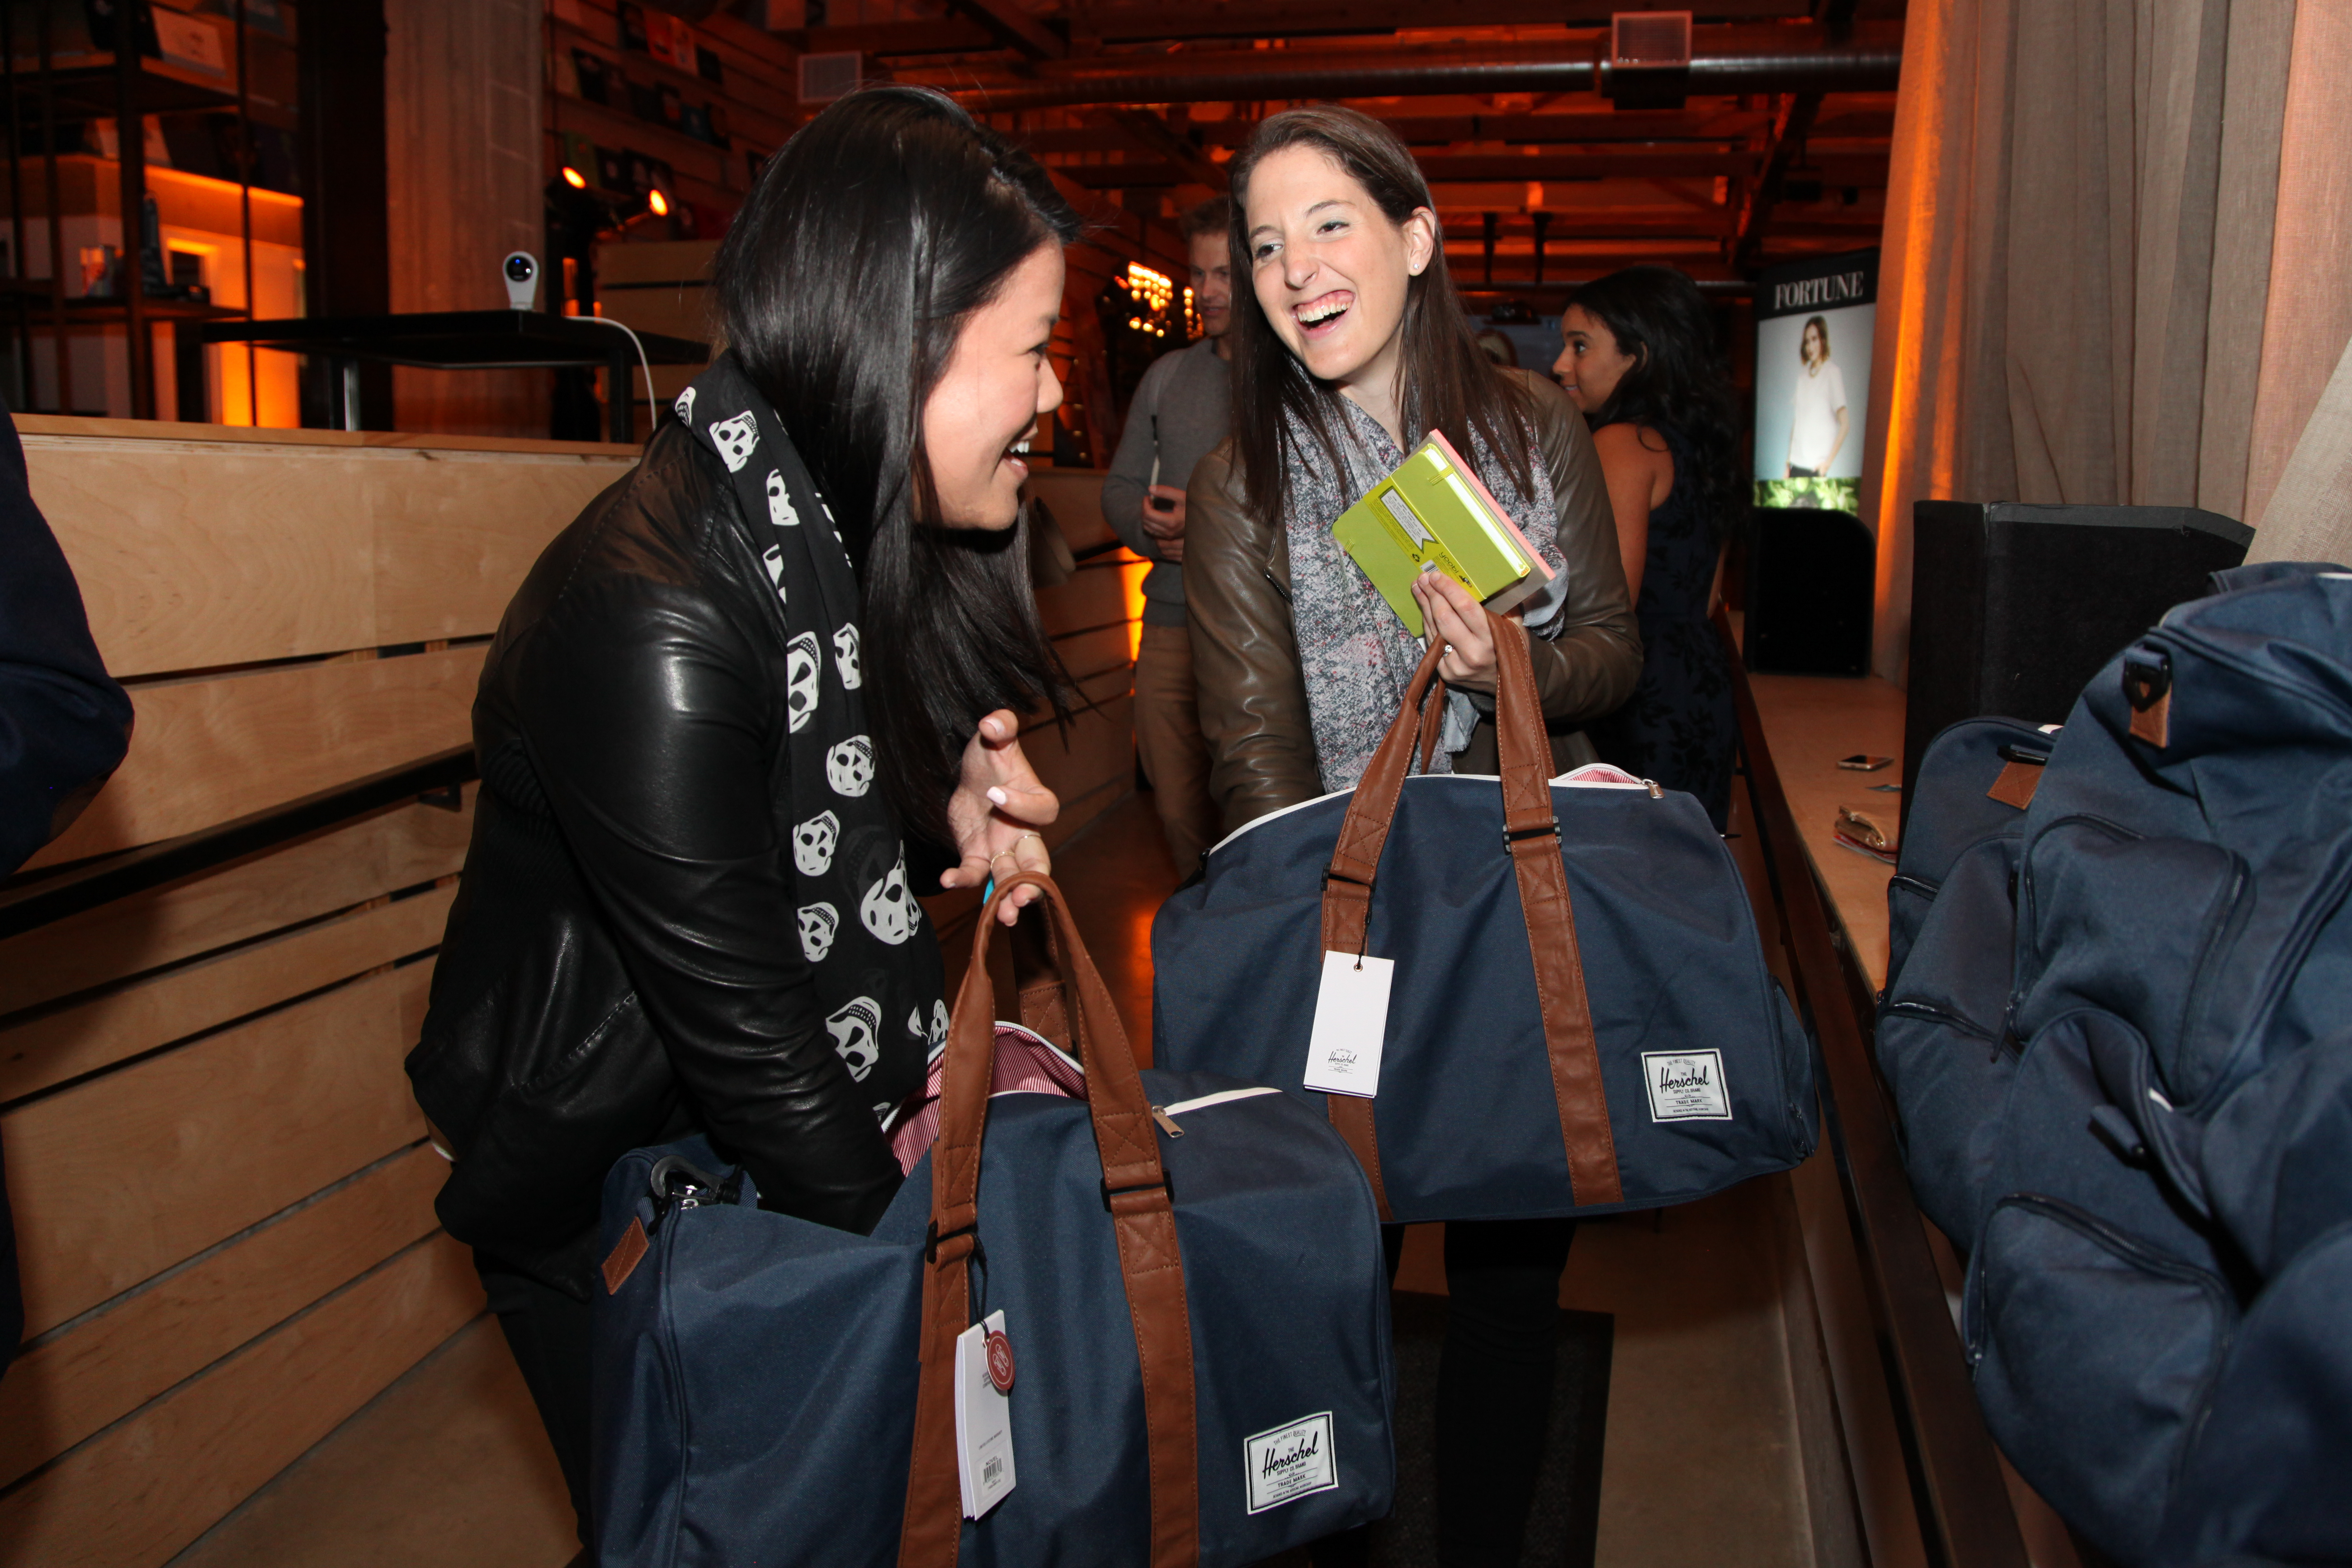 Rachel Holt, right, Head of North American Operations at Uber and 2016 honoree on Fortune's 40 Under 40 list, and MoMo Zhou, Corporate Communications at Uber, checks out the party gift bag contents.